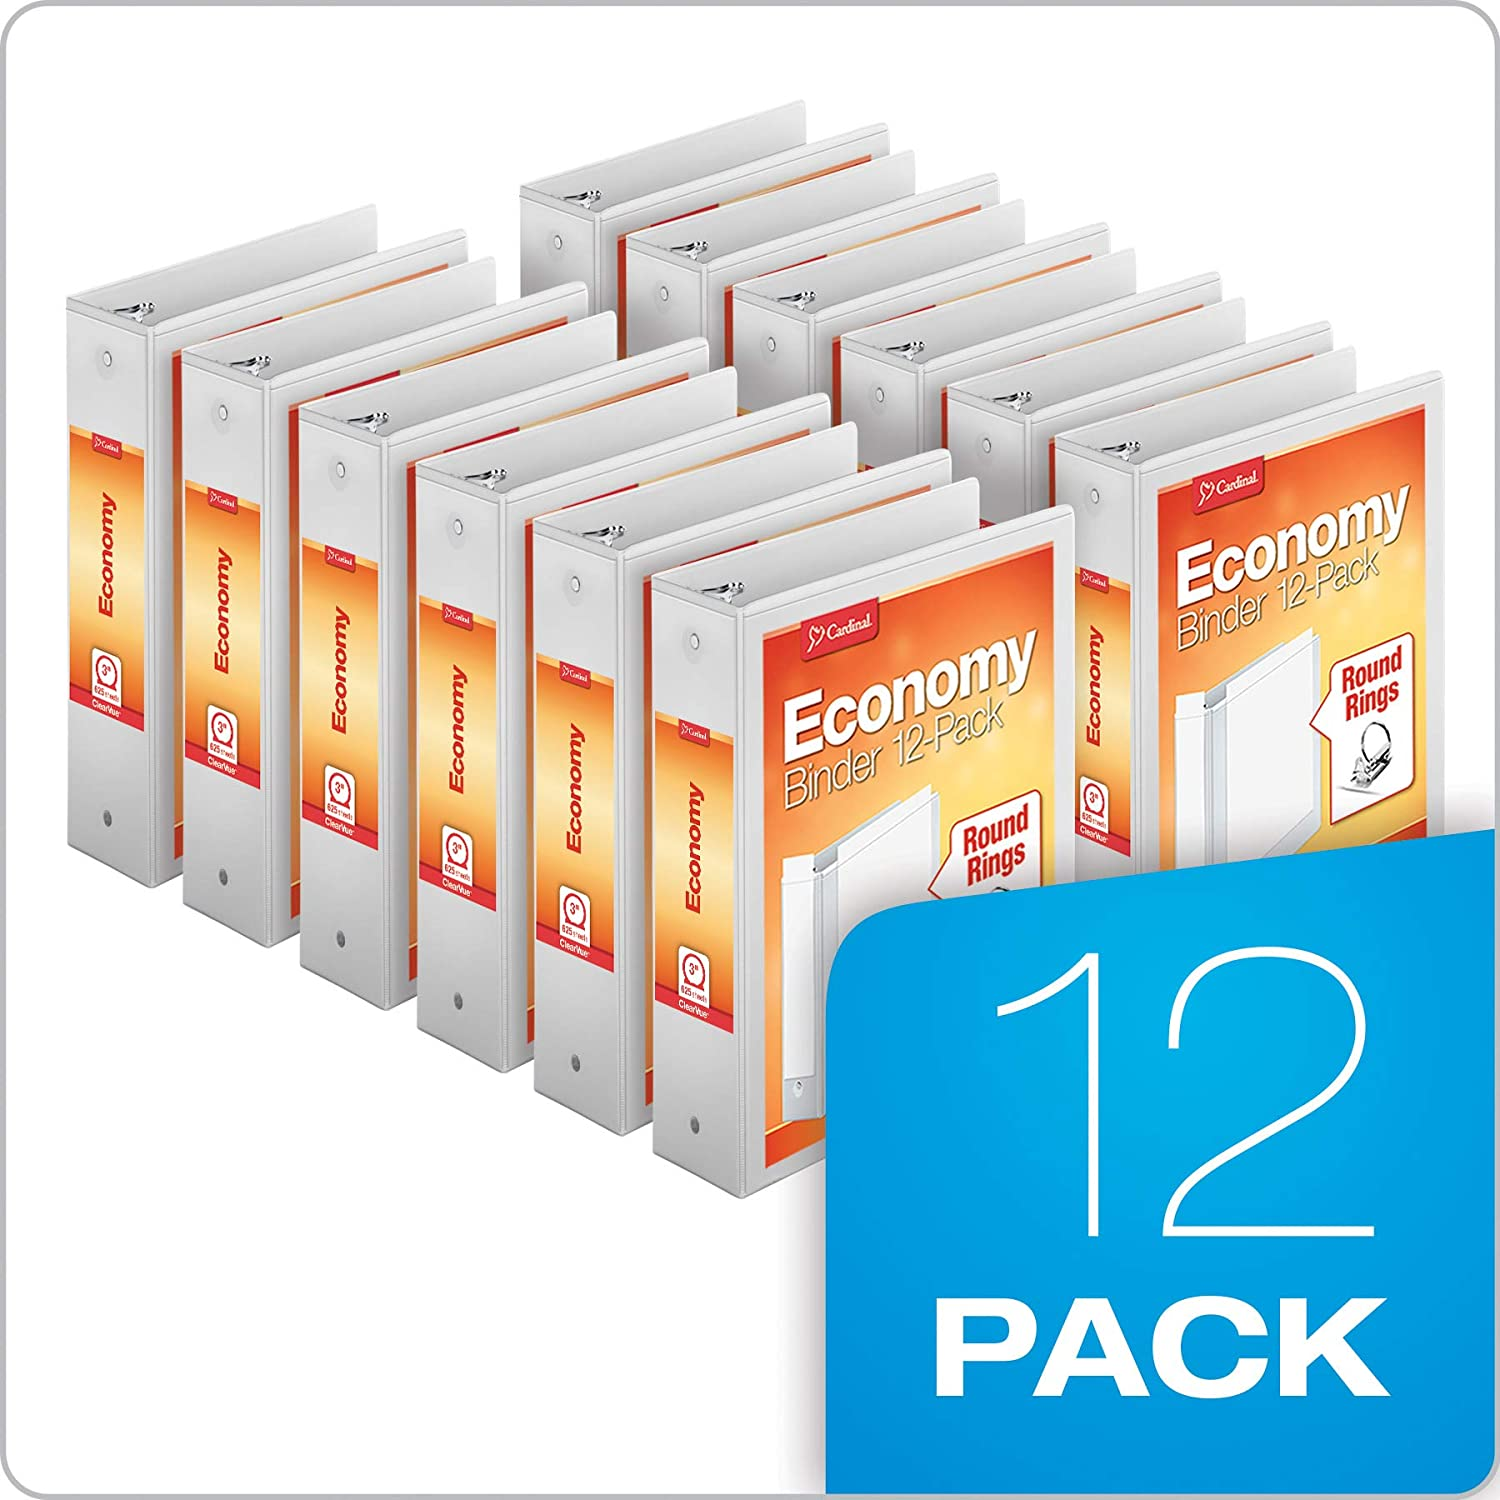 """Cardinal Economy 3-Ring Binders, 3"""", Round Rings, Holds 625 Sheets, ClearVue Presentation View, Non-Stick, White, Carton of 12 (90651) : View Binders : Office Products"""